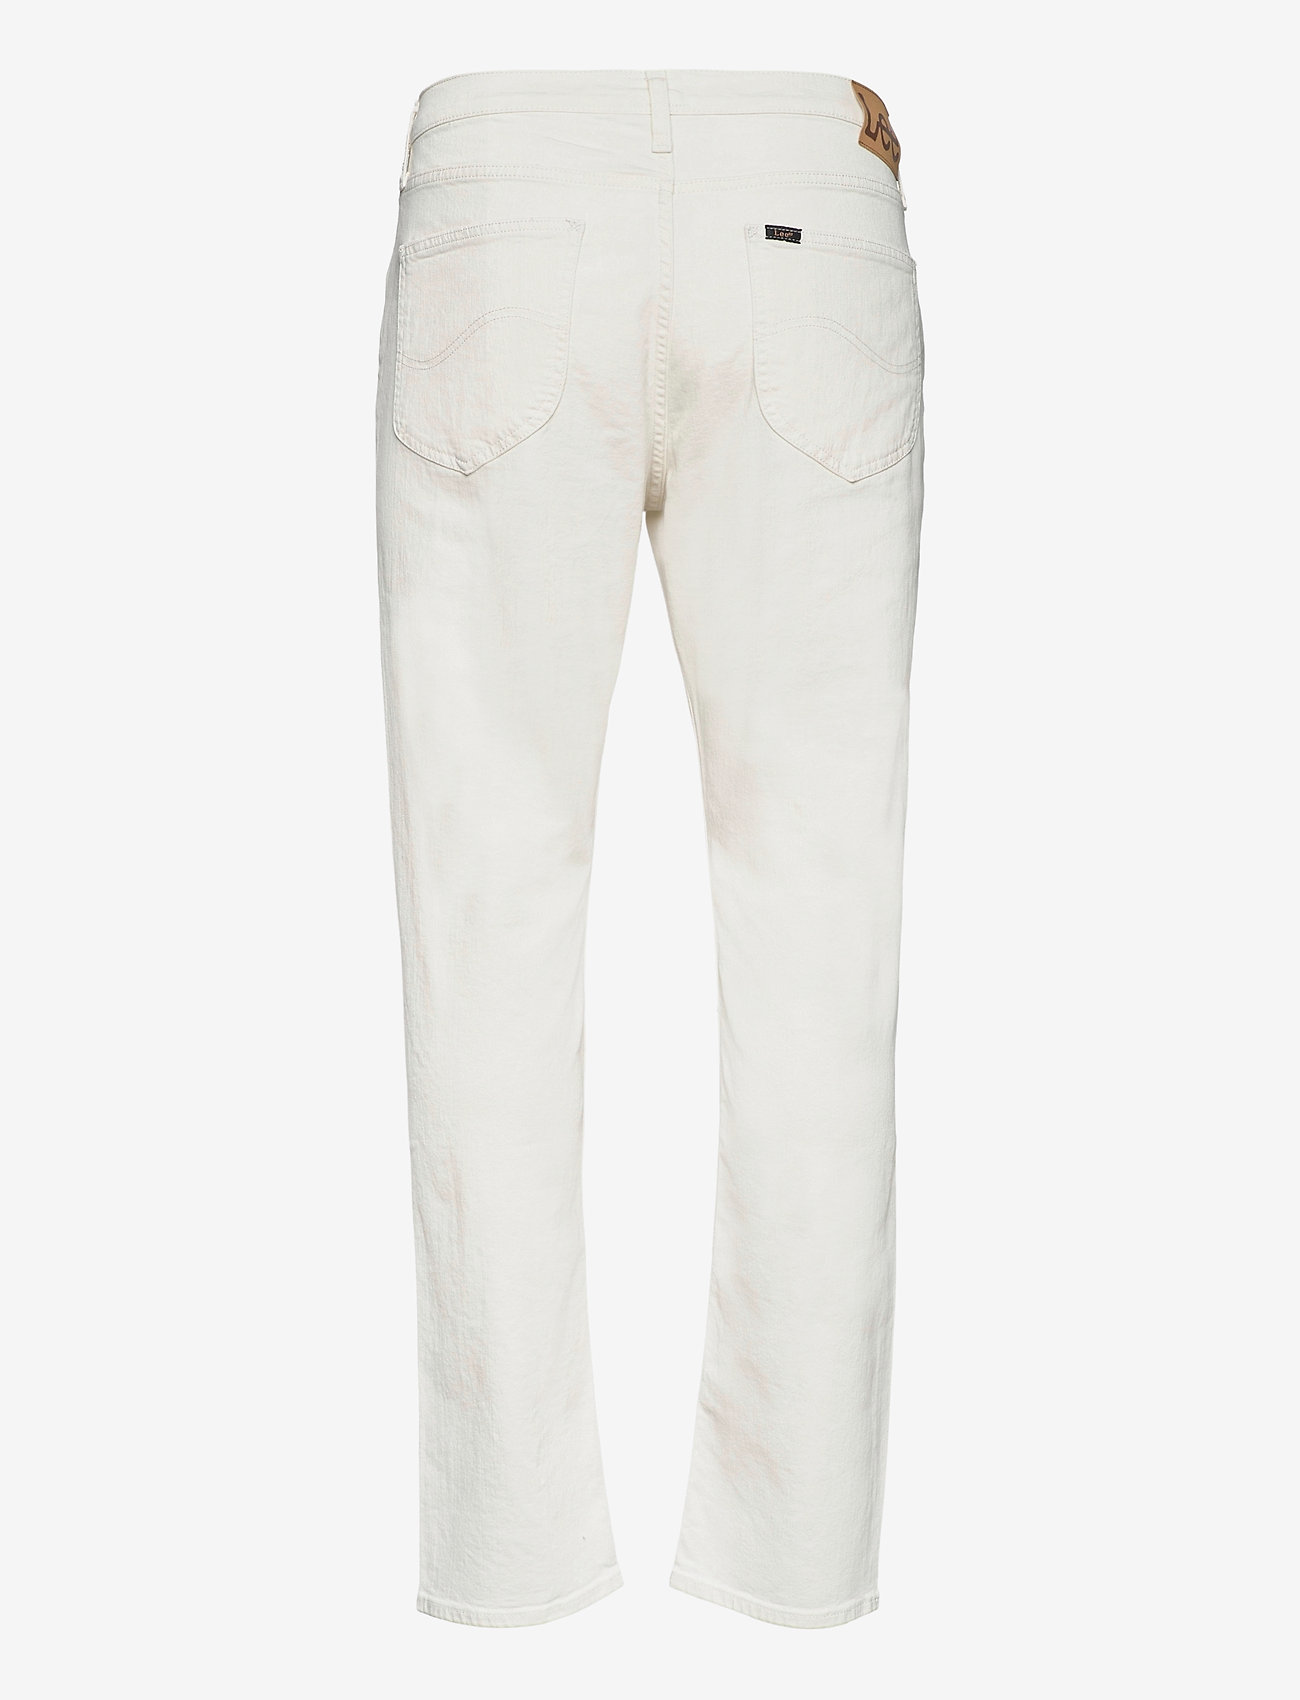 Lee Jeans - WEST - relaxed jeans - off white - 1